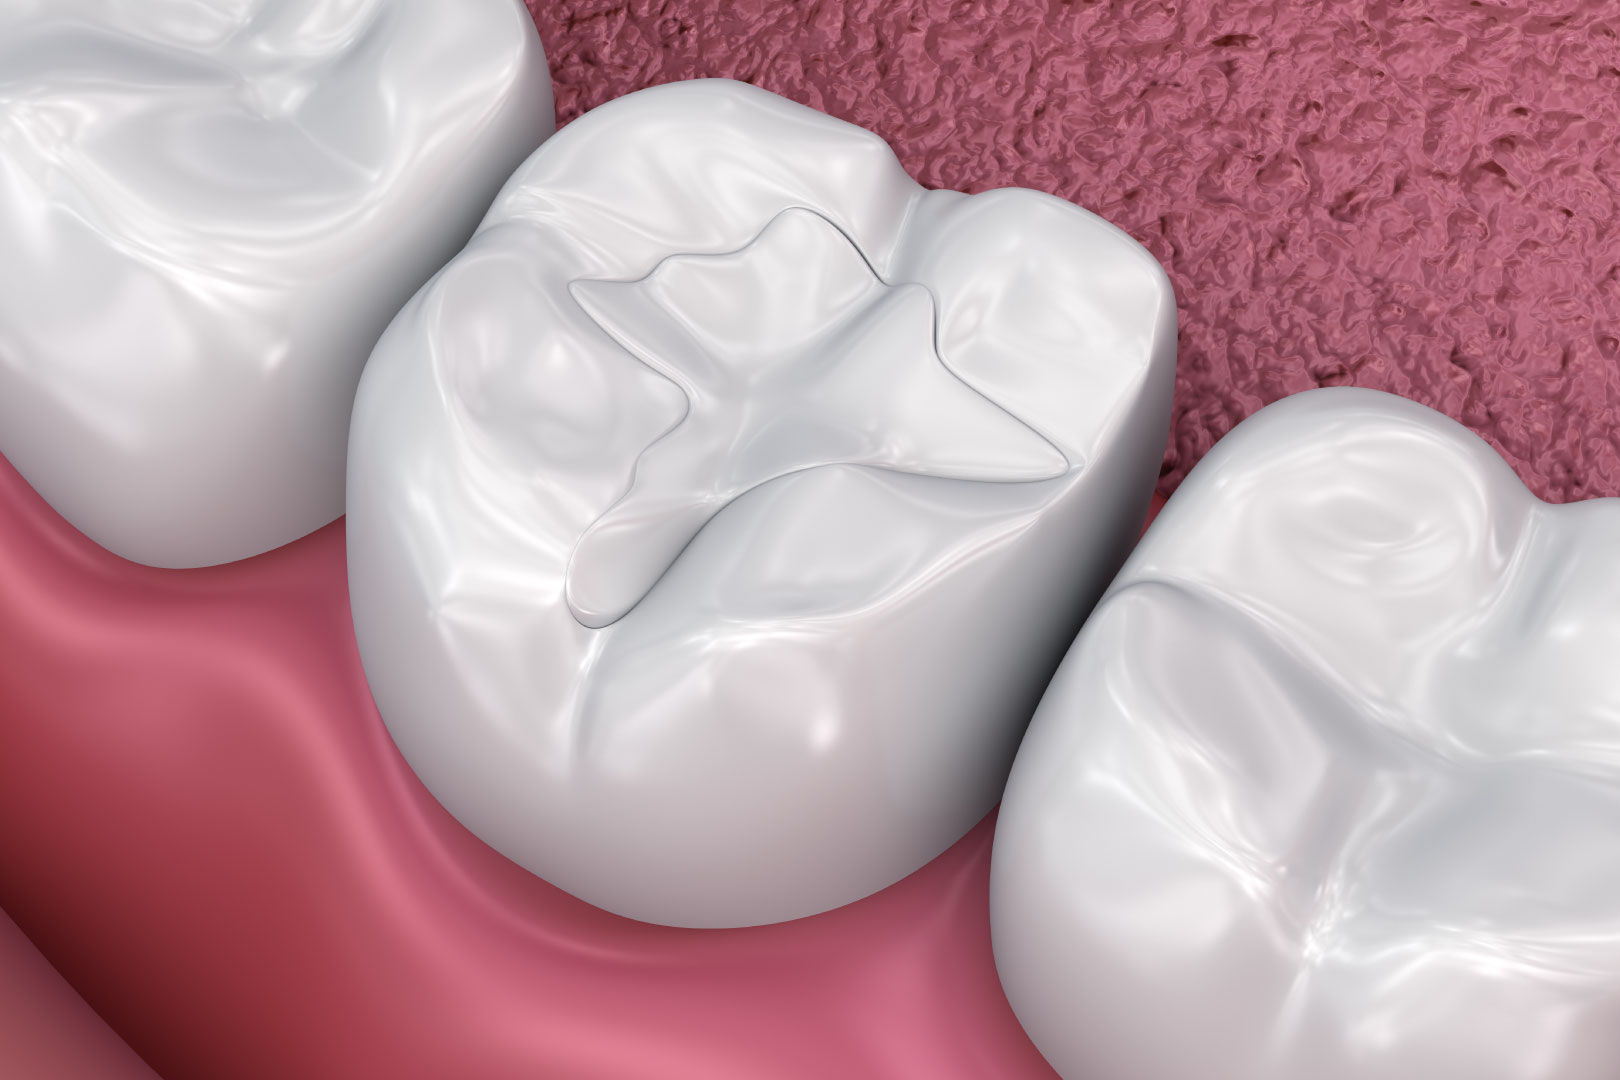 Dental Fillings - Lux Smiles Dental